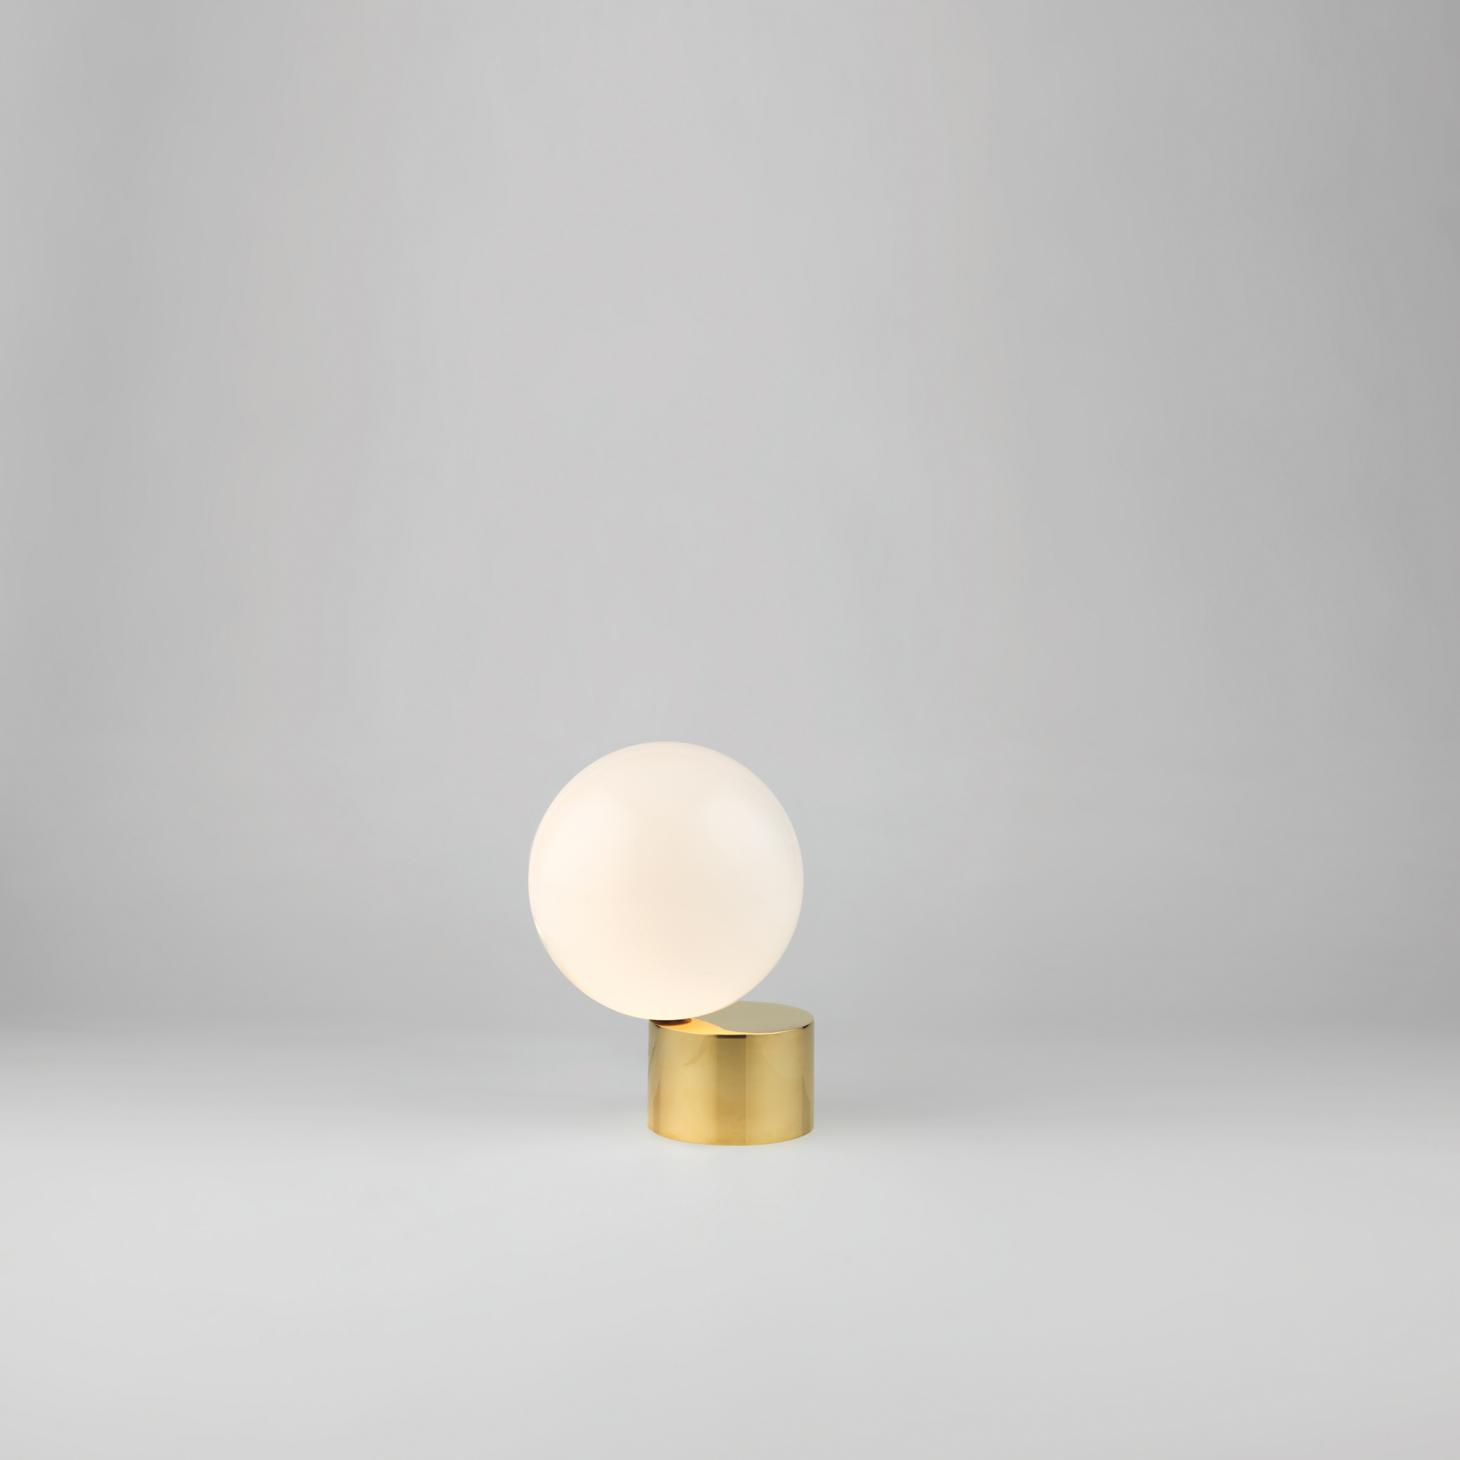 'Tip of the tongue' lamp, by Michael Anastassiades